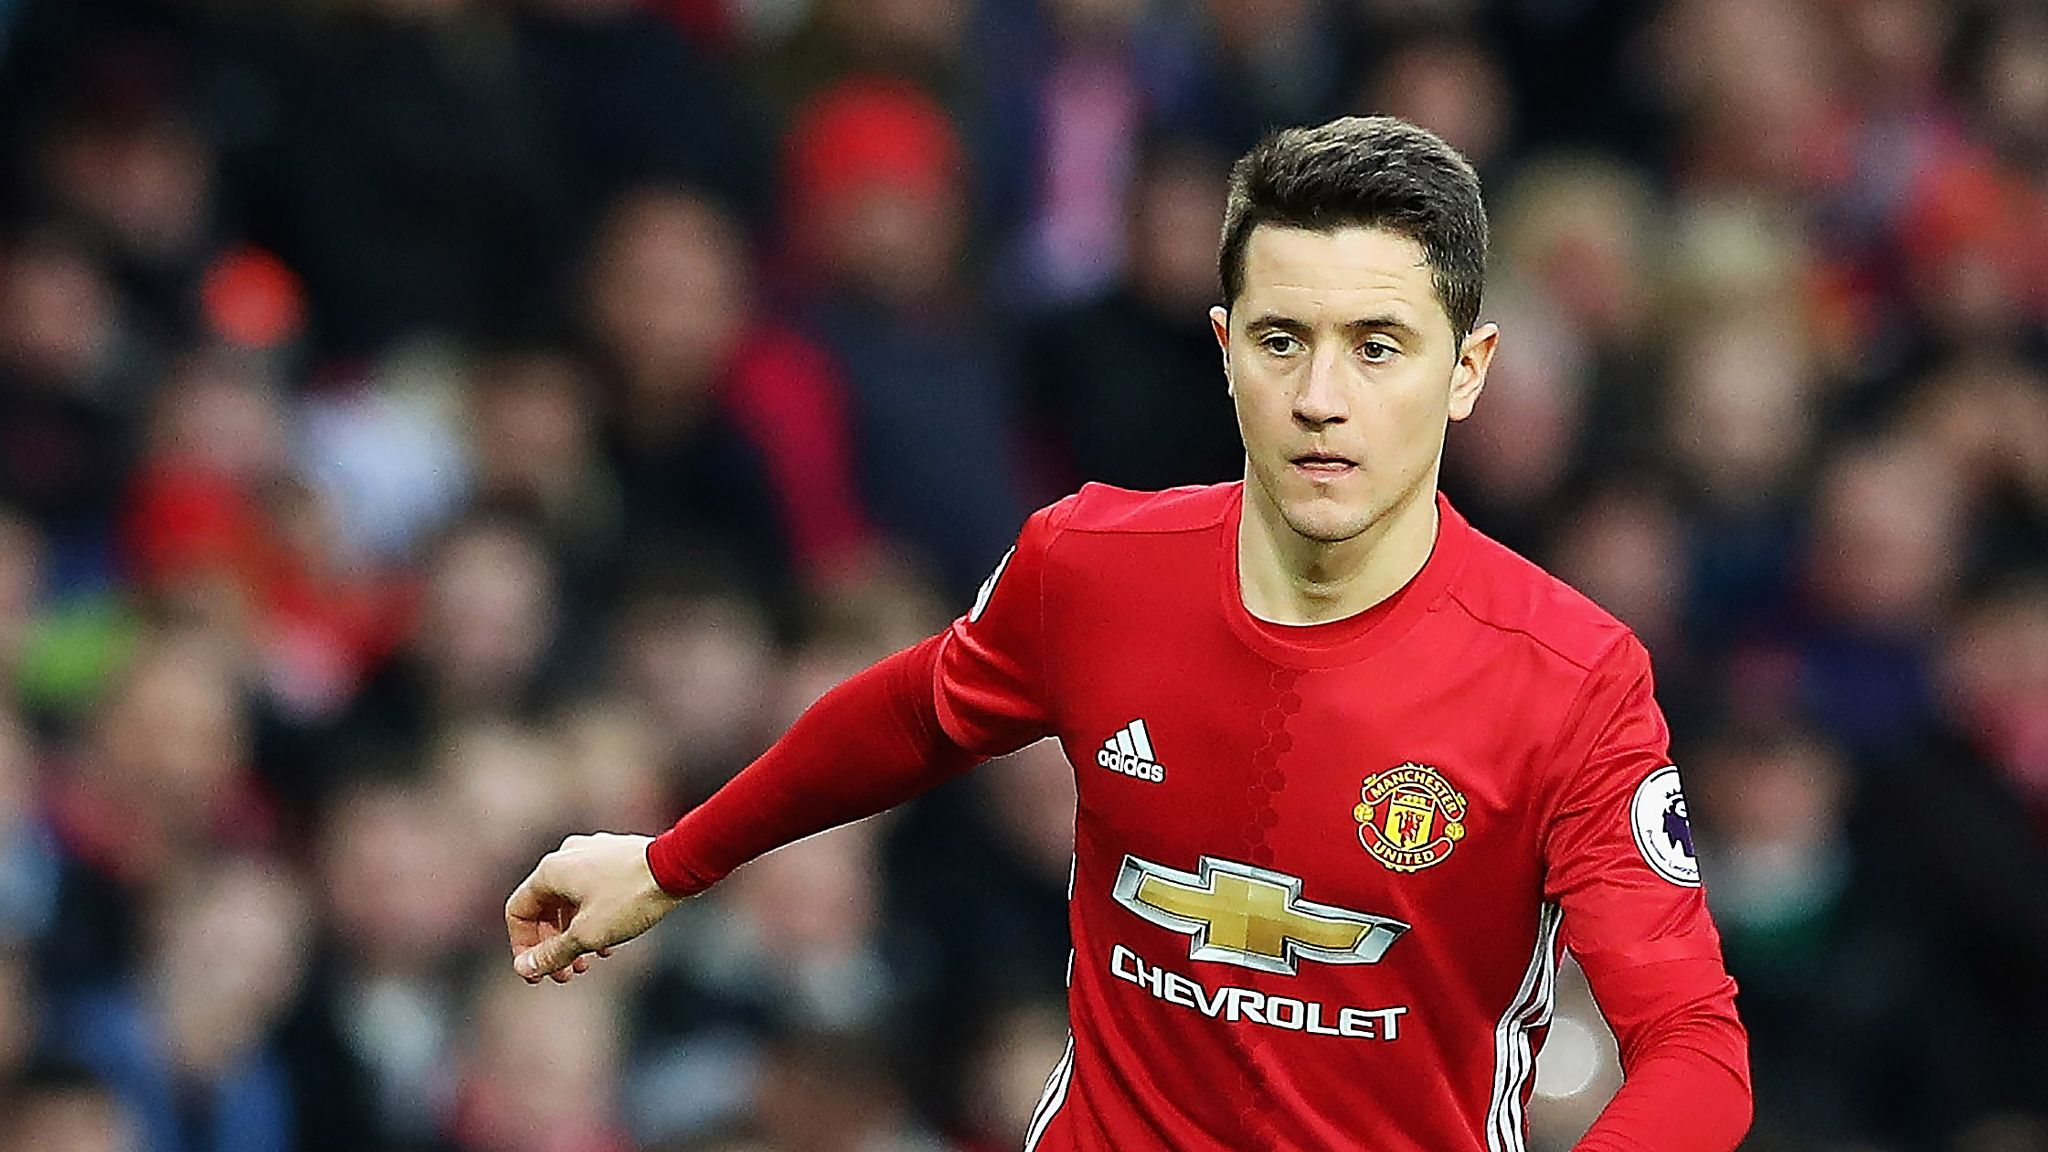 Saint-Etienne v Manchester United preview: Ander Herrera suspended for  visitors   Football News